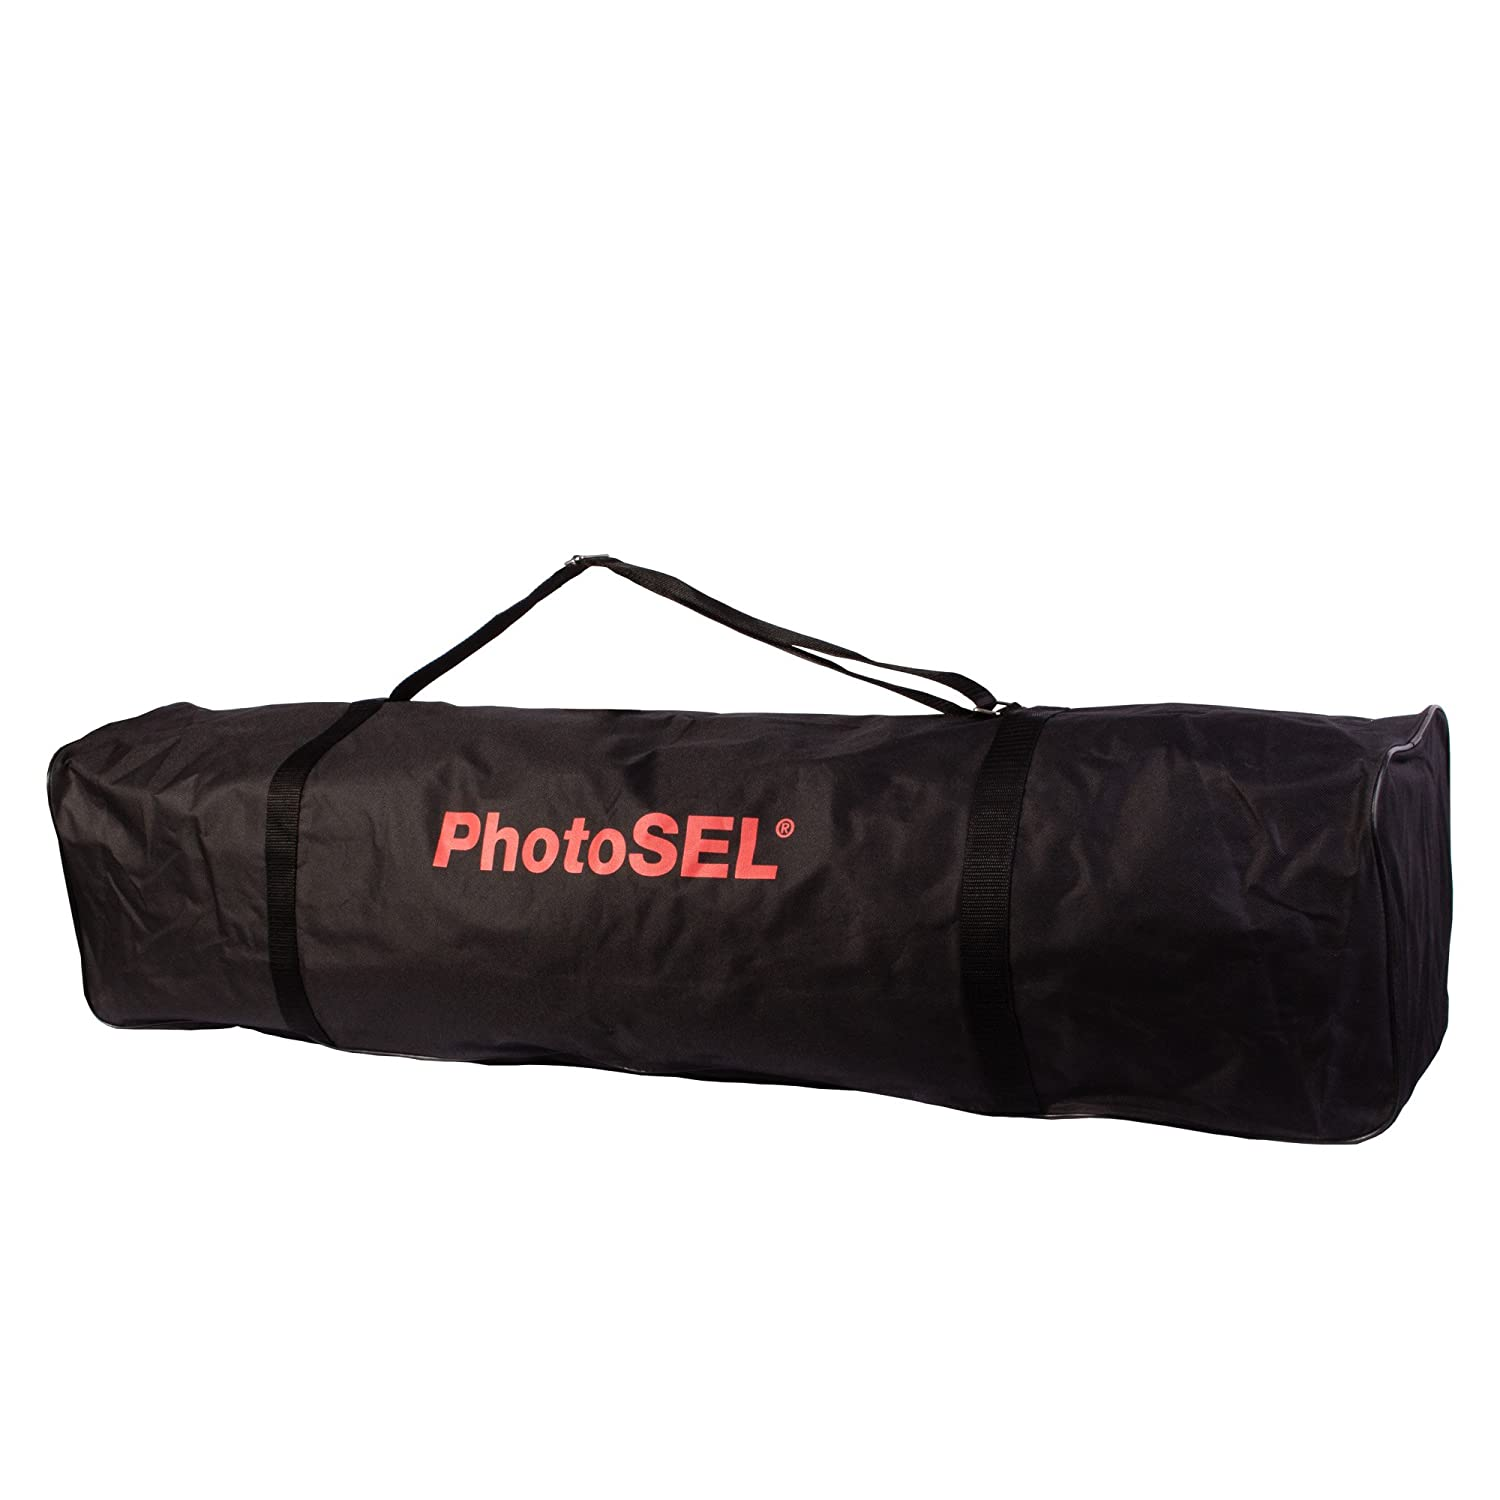 PhotoSEL Light Stand Carry Bag, 45.3 x 8.3 x 11 inches, Heavy Duty Canvas, Tripod, Studio Background Support, Umbrella, BG3115